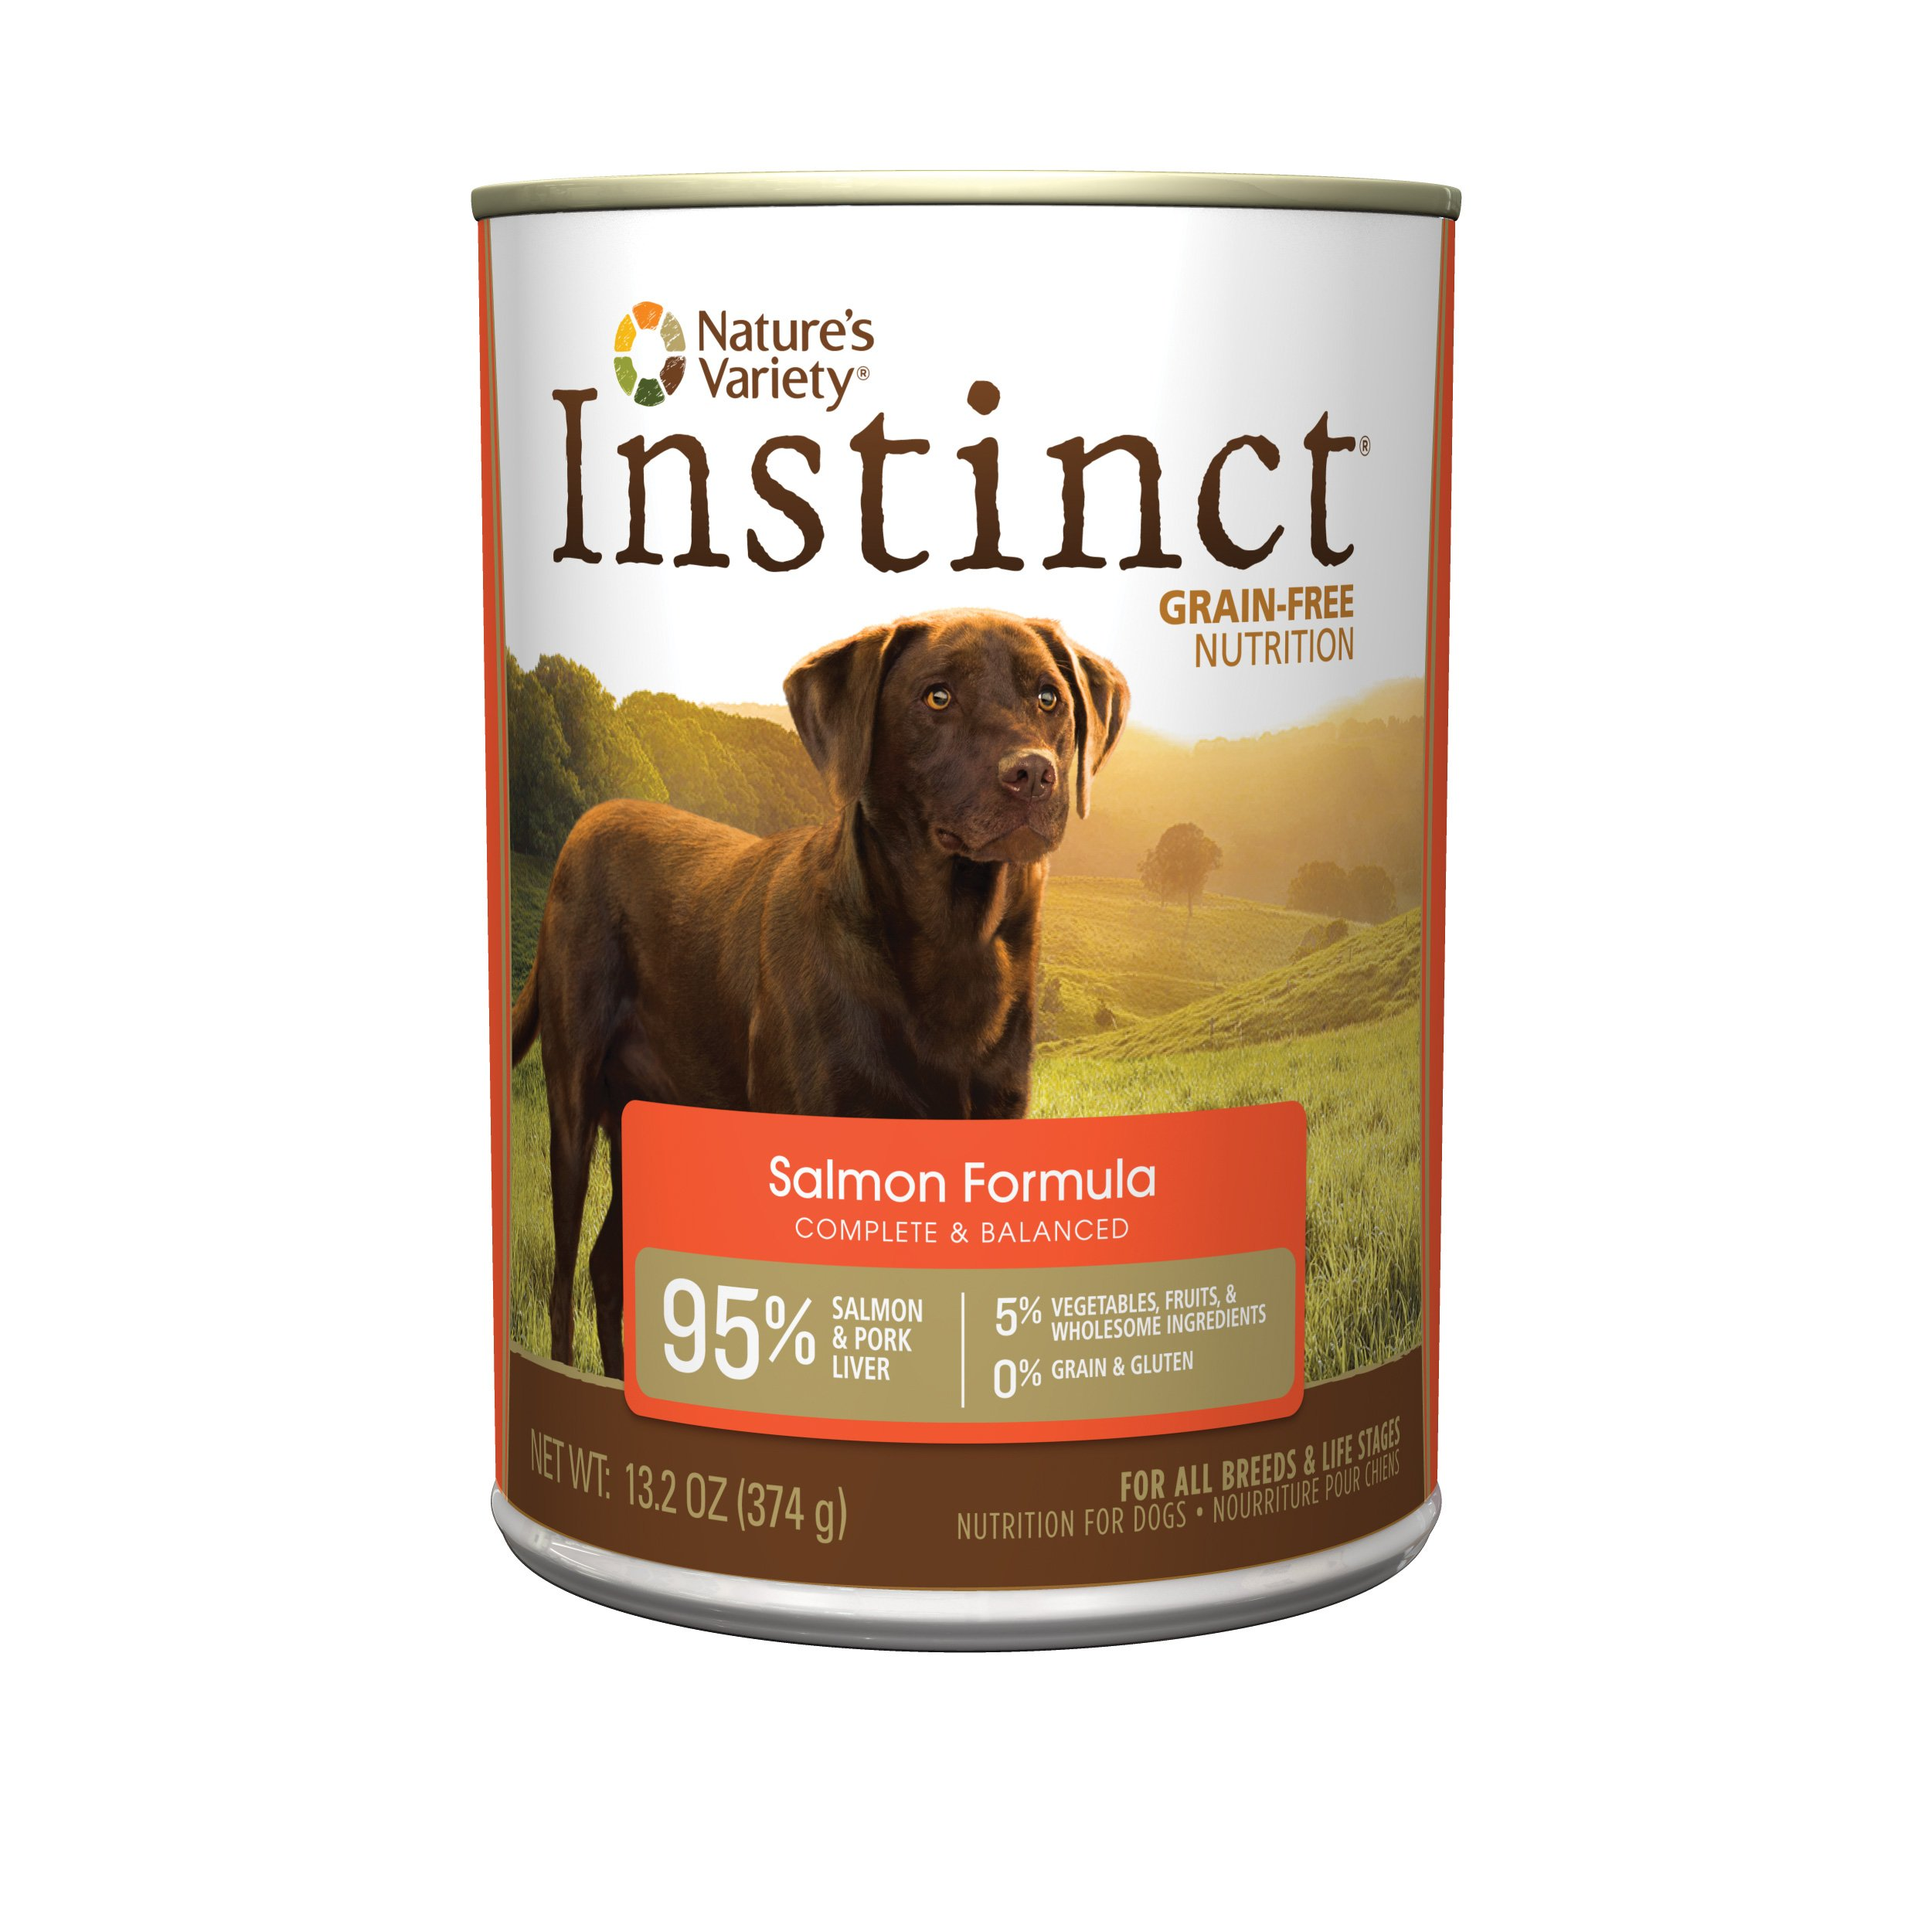 Instinct Grain Free Salmon Formula Natural Wet Canned Dog Food by Nature's Variety, 13.2 oz. Cans (Case of 12)